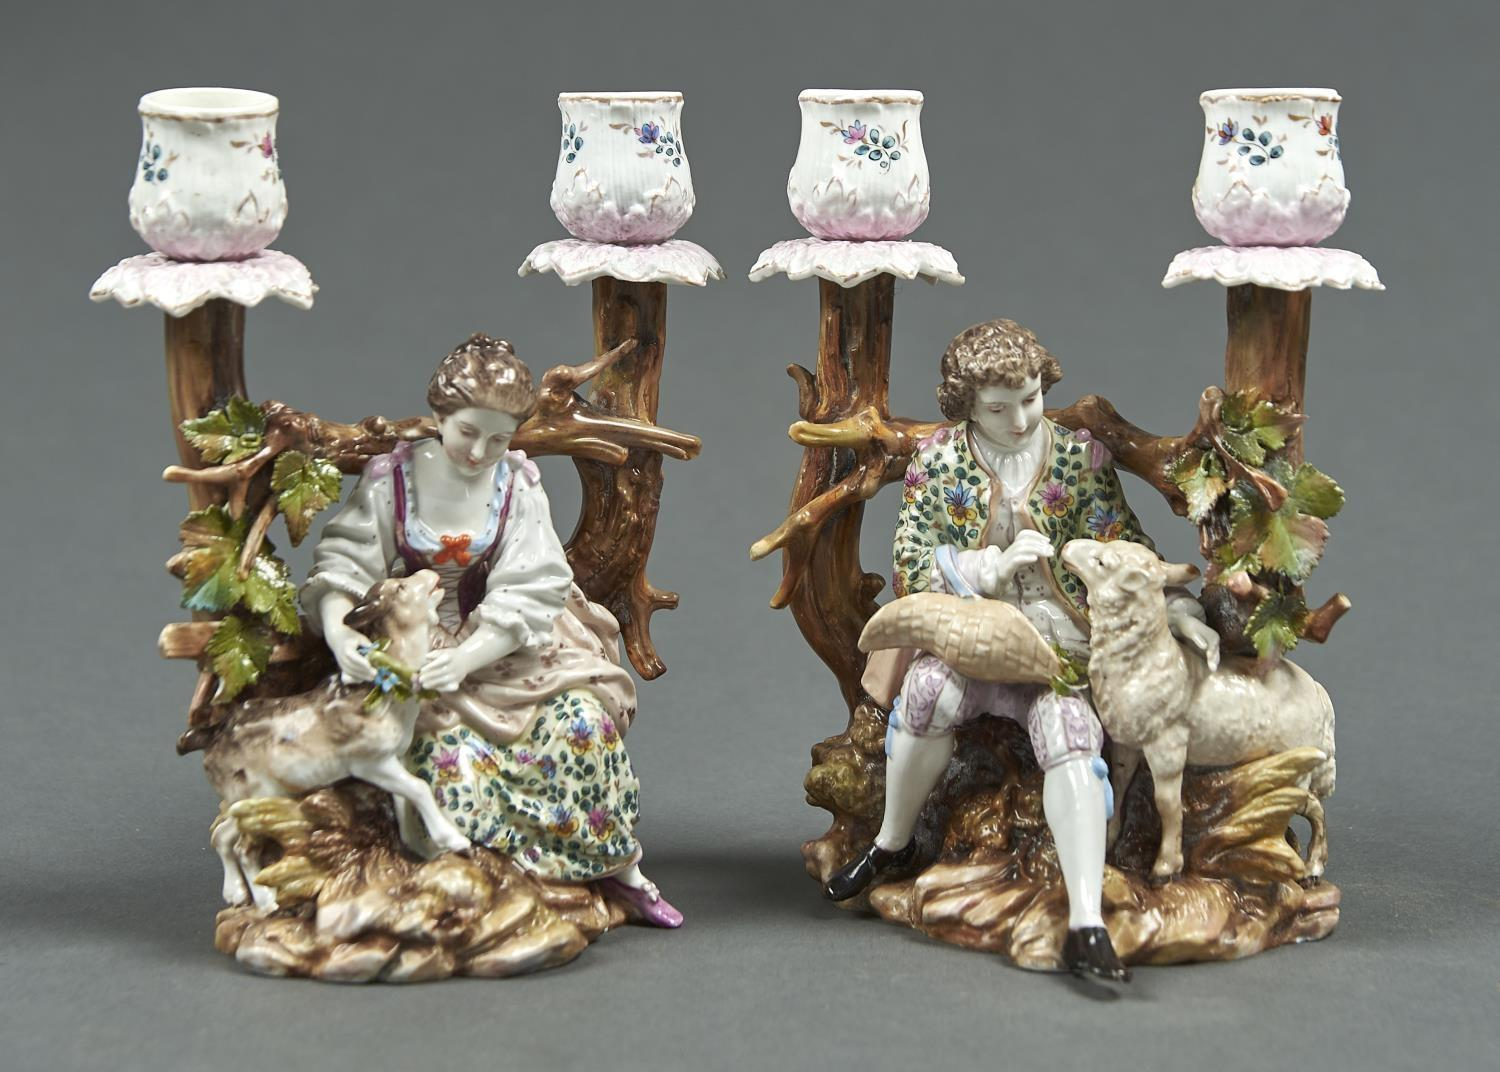 A PAIR OF VOLKSTEDT SHEPHERD AND SHEPHERDESS CANDELABRA, LATE 19TH C, 19CM H, CROSSED PITCHFORKS